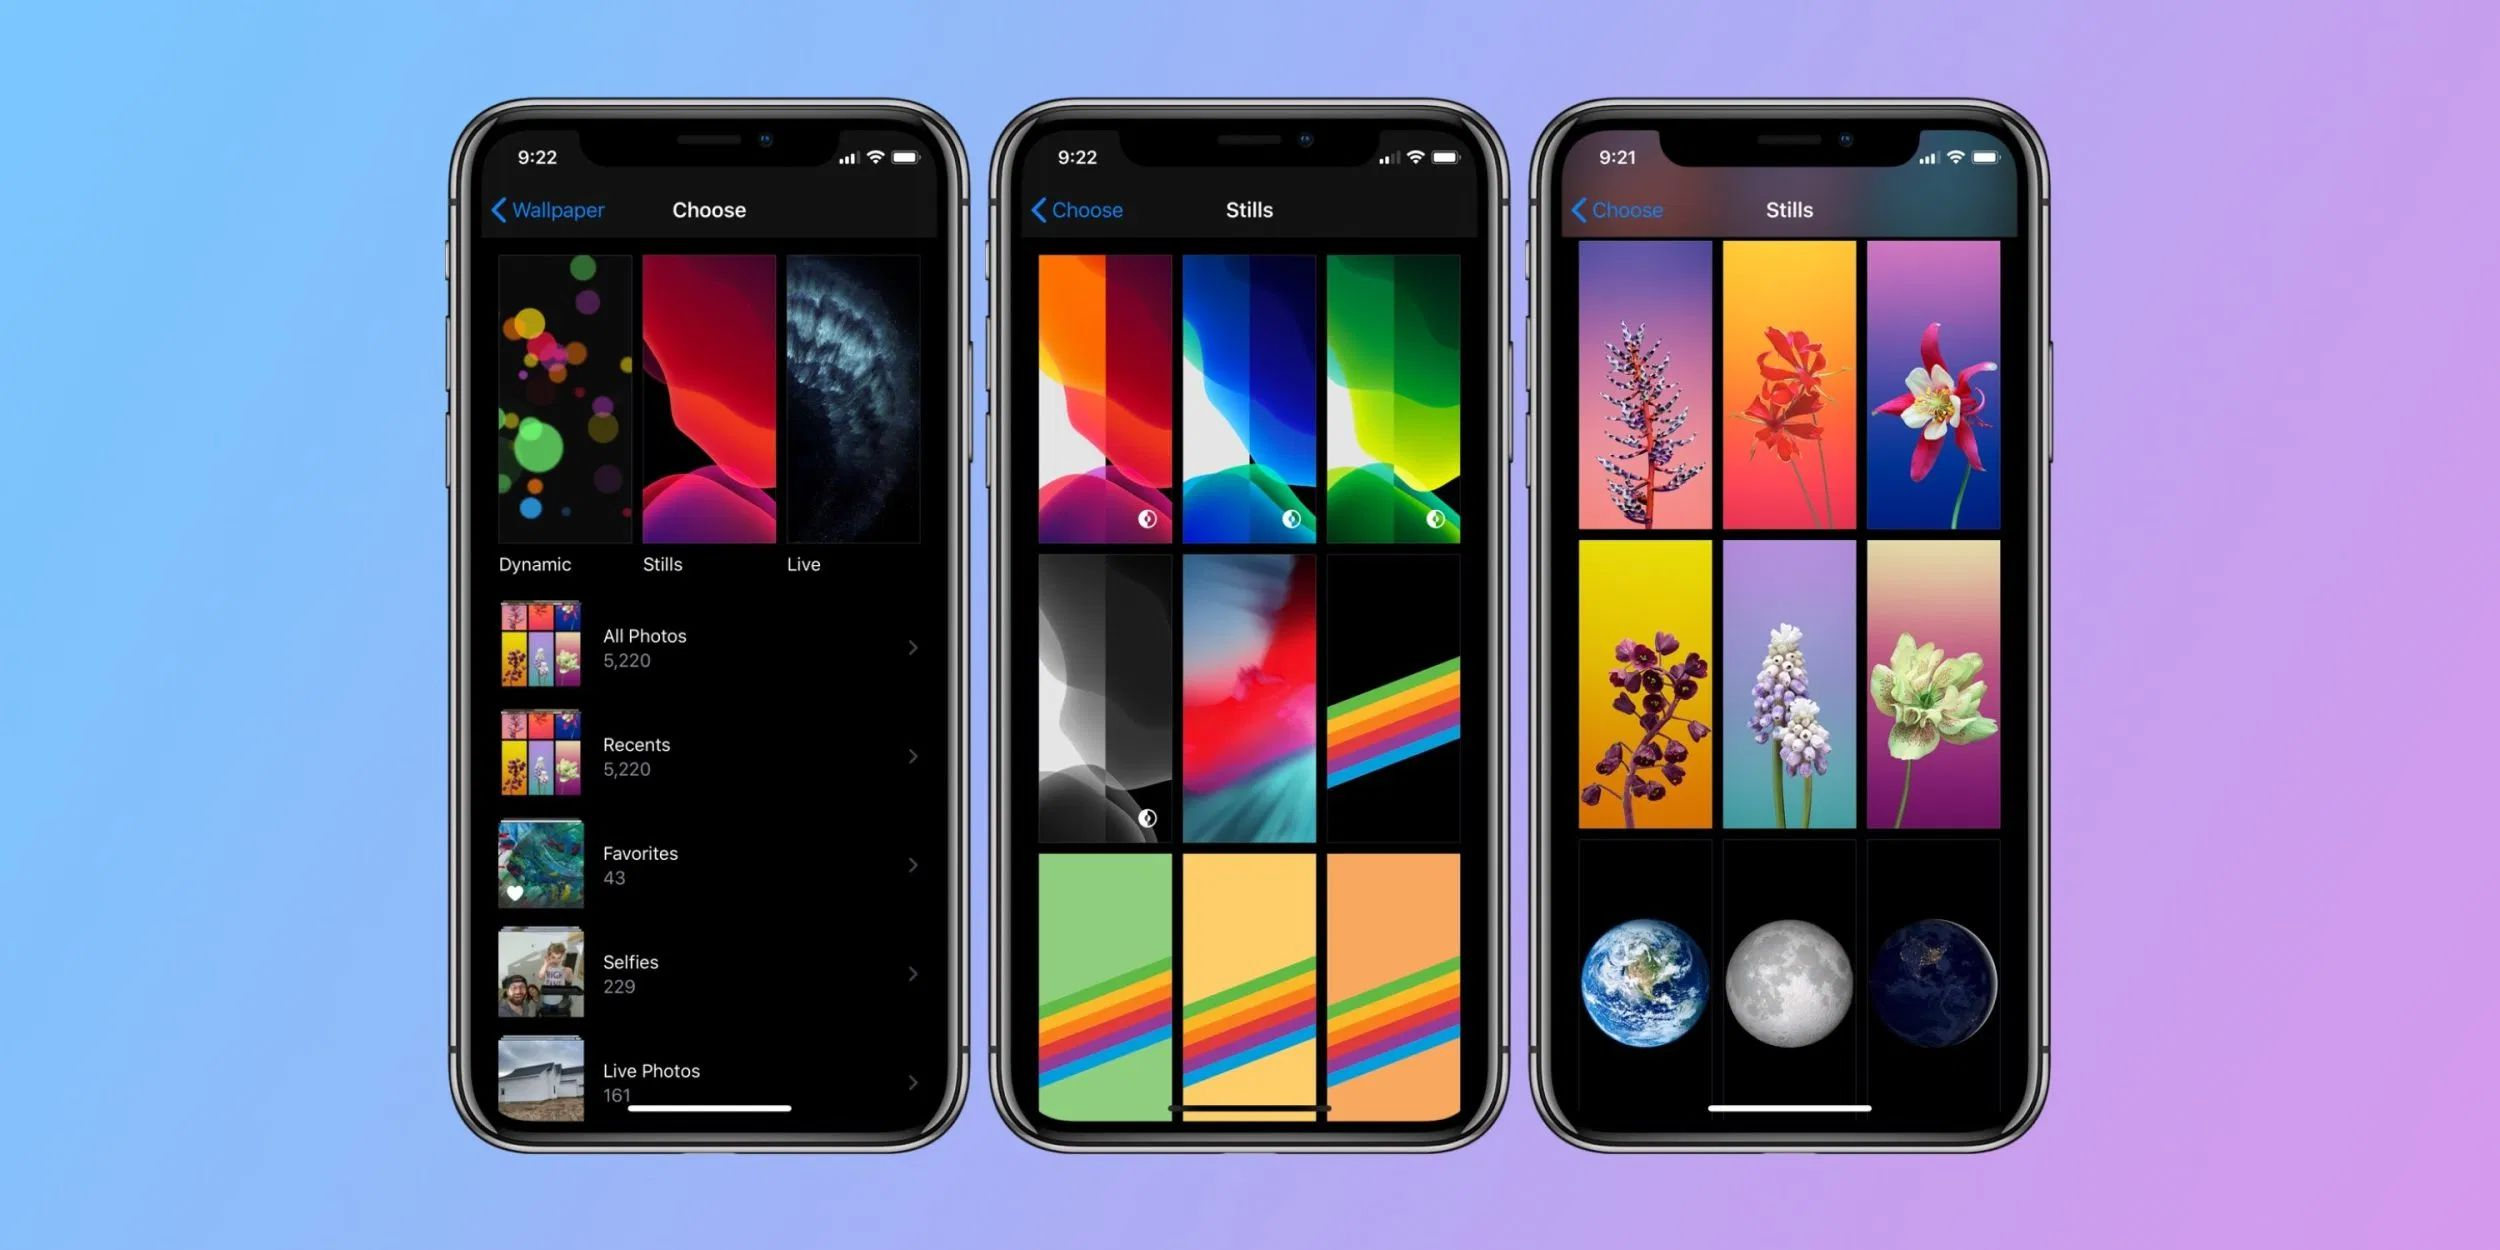 iOS 14: Major Accessibility Features, Alipay Apple Pay, Wallpaper app Integration, More